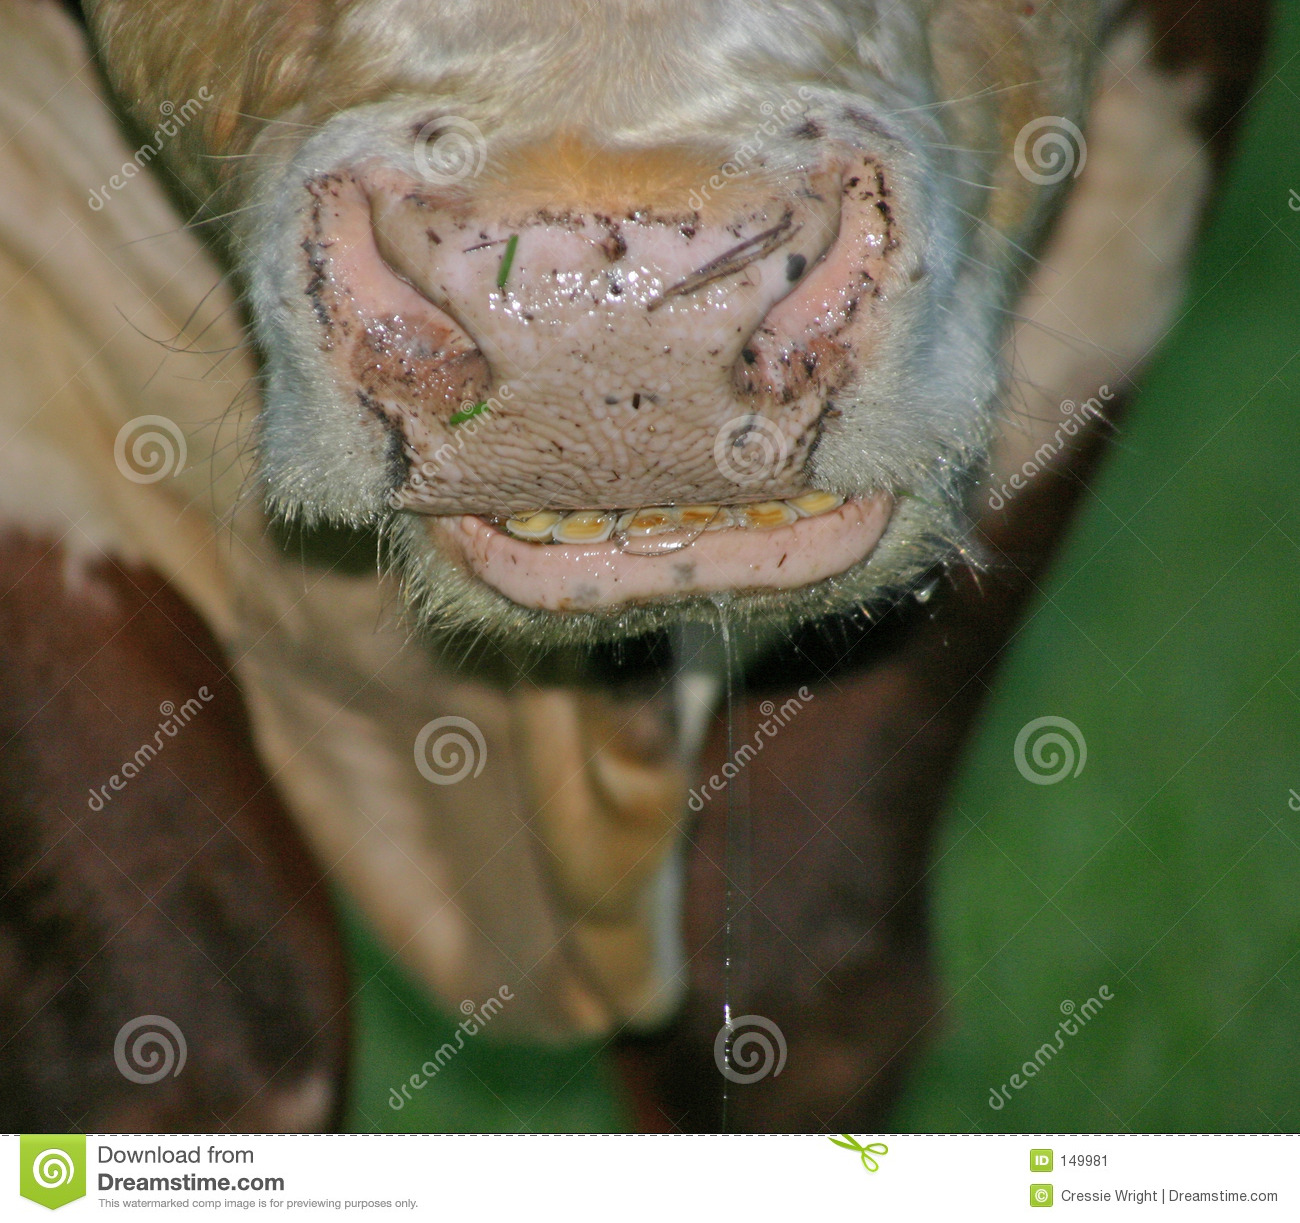 Cow Smile stock image. Image of cows, slobbers, slobber - 149981